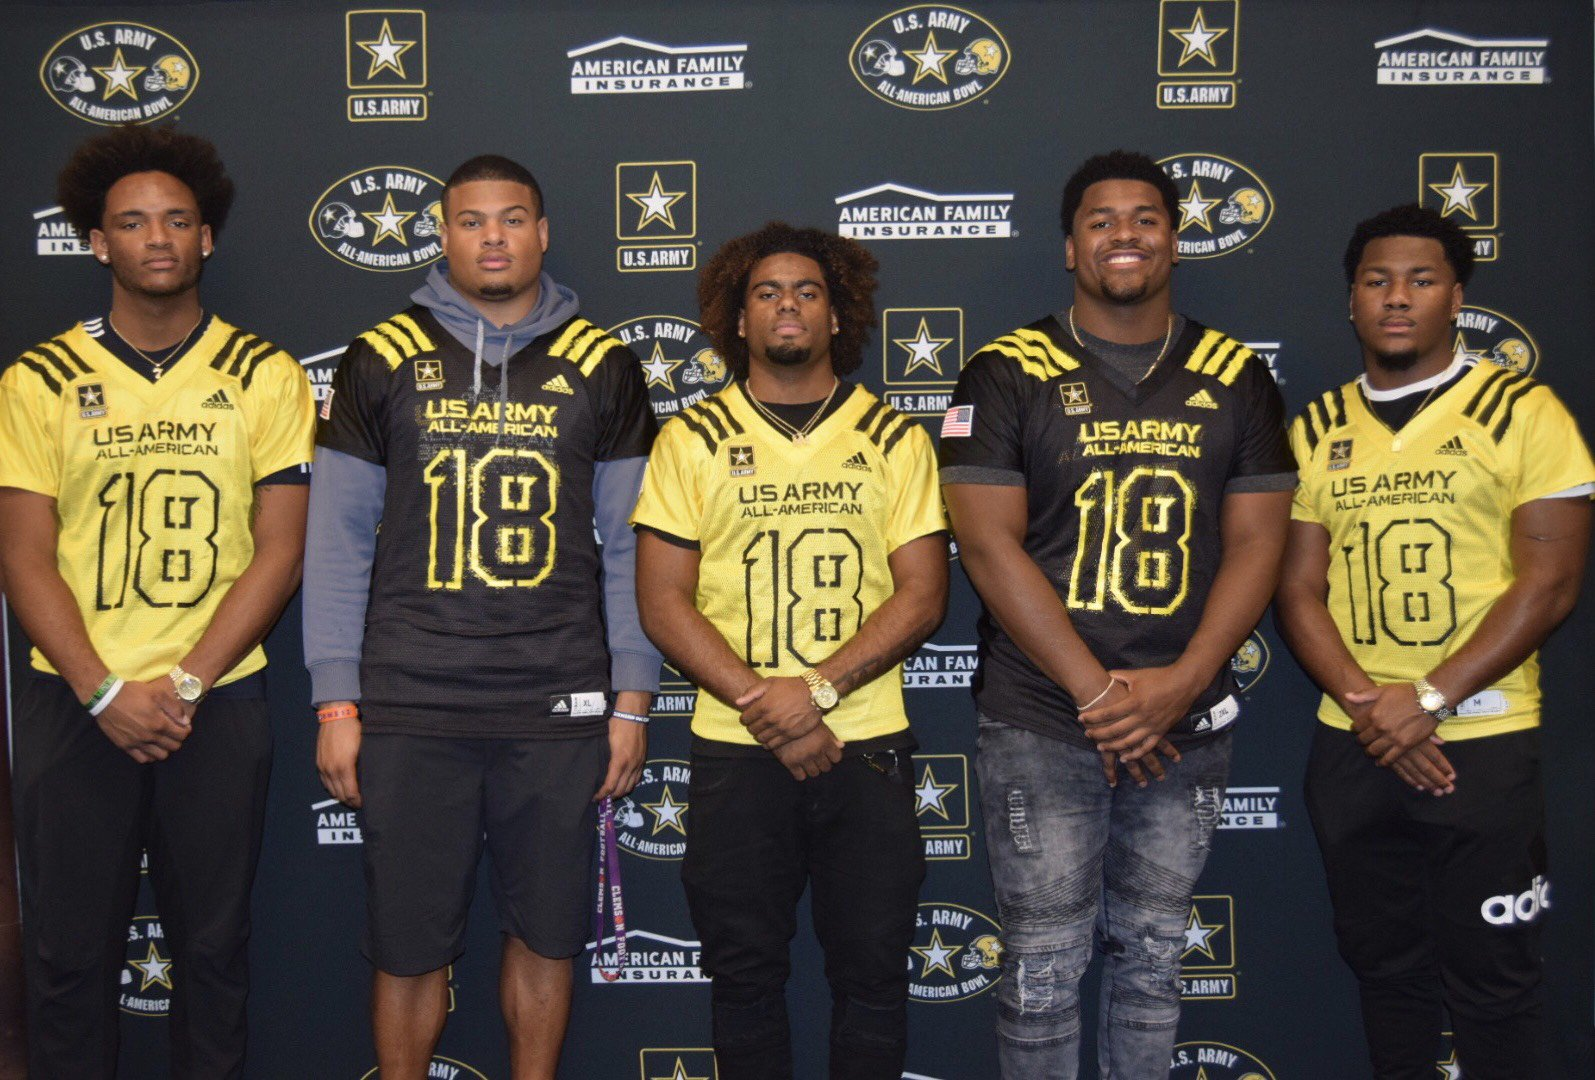 IMG Academy quintet gets one last game together at U.S. Army All-American Bowl https://t.co/ySmTkSI7V2 https://t.co/LkKxXqO1dA